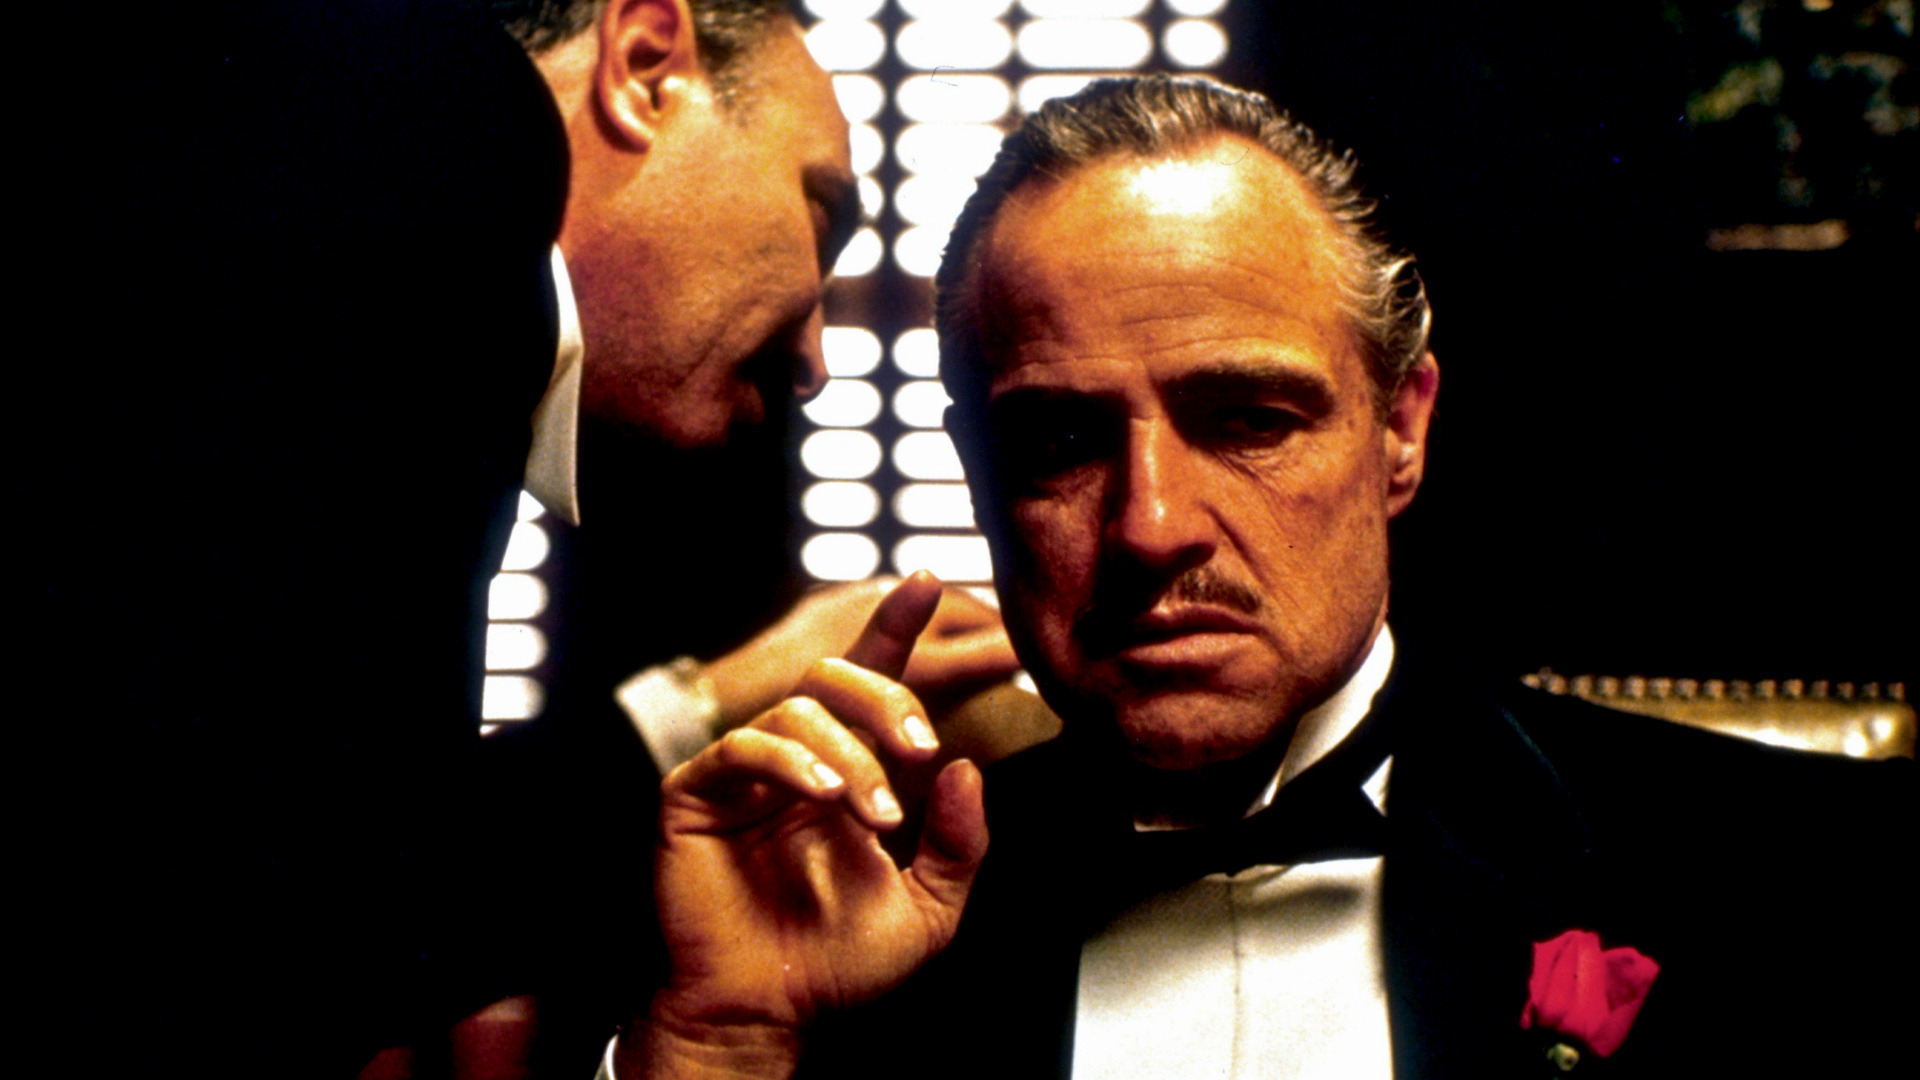 The Godfather / The Godfather: Part II screening